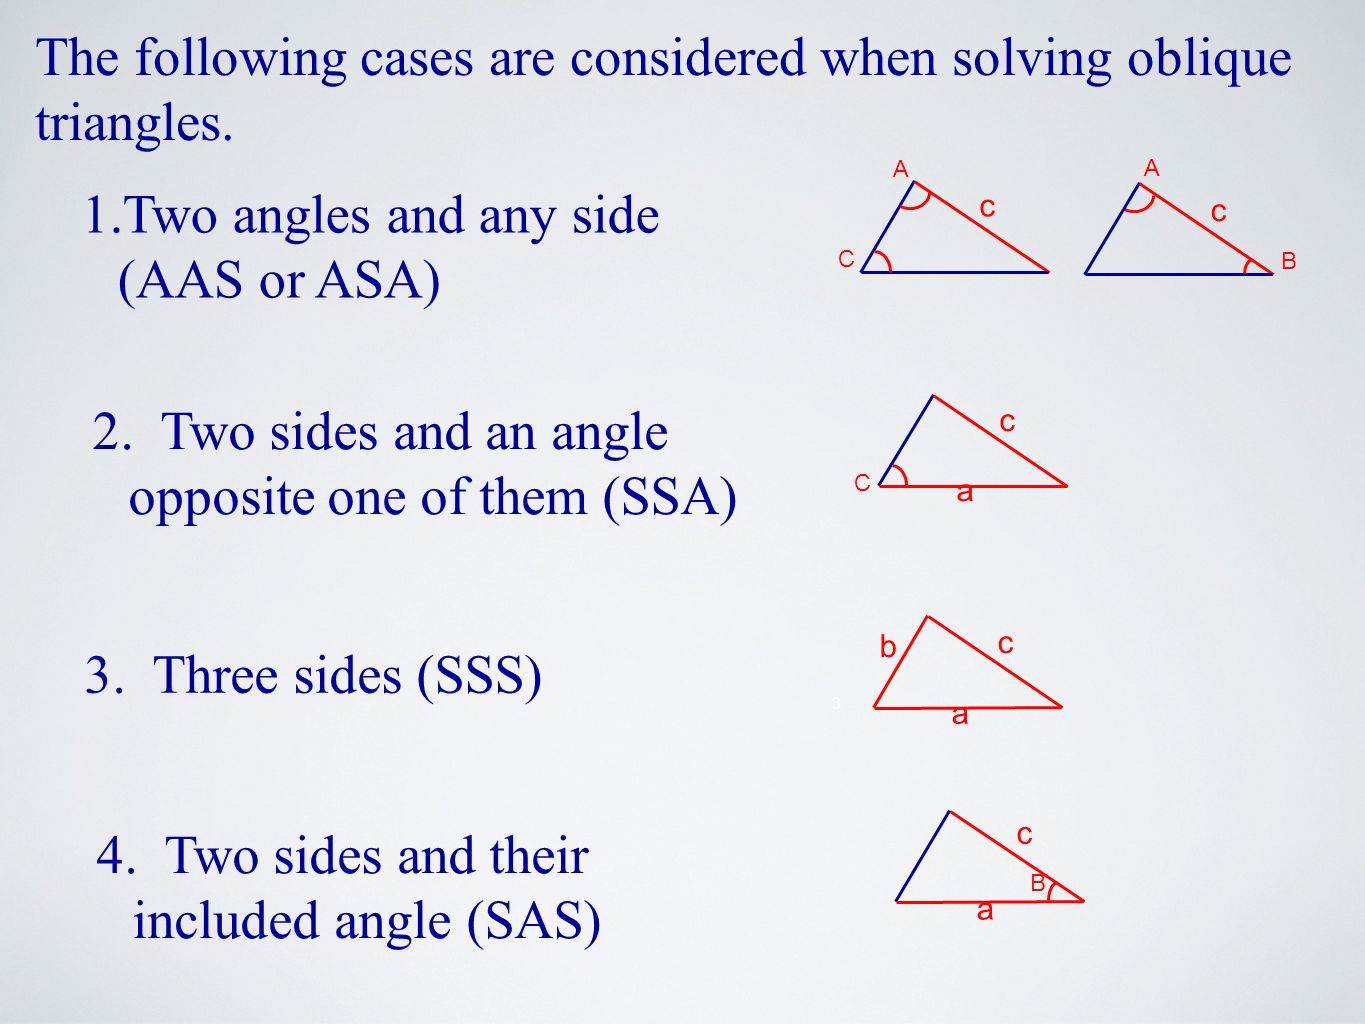 The following cases are considered when solving oblique triangles.